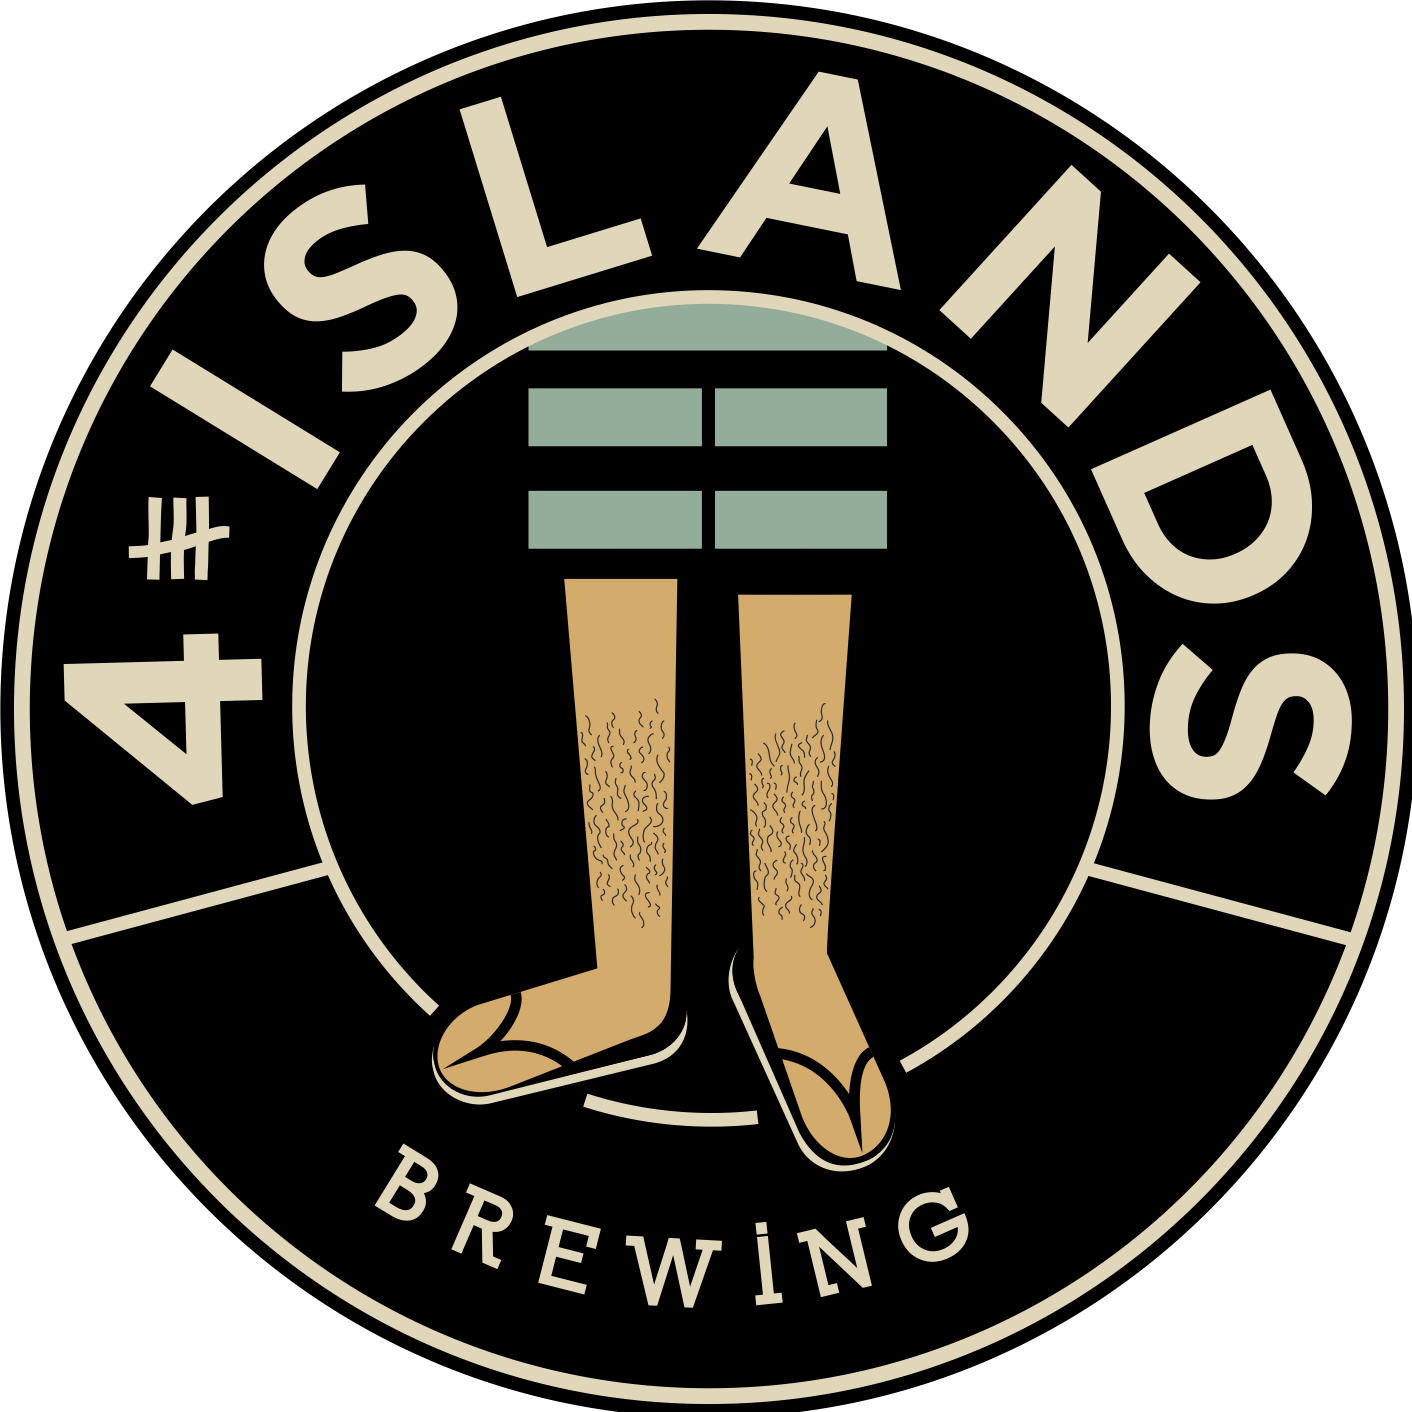 002004-20191228125126-4-islands-brewing.png